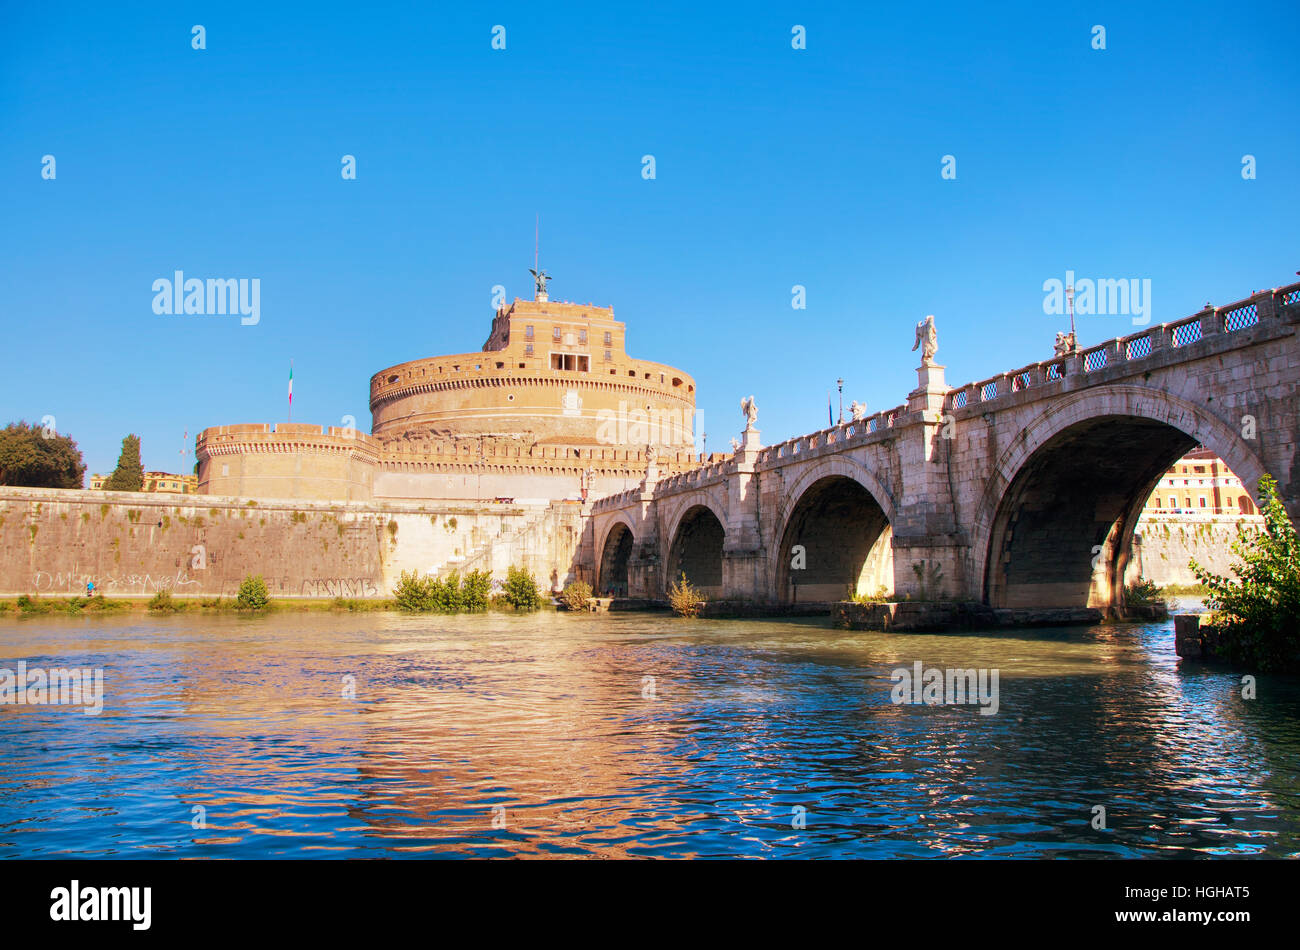 The Mausoleum of Hadrian (Castel Sant'Angelo) in Rome, Italy - Stock Image